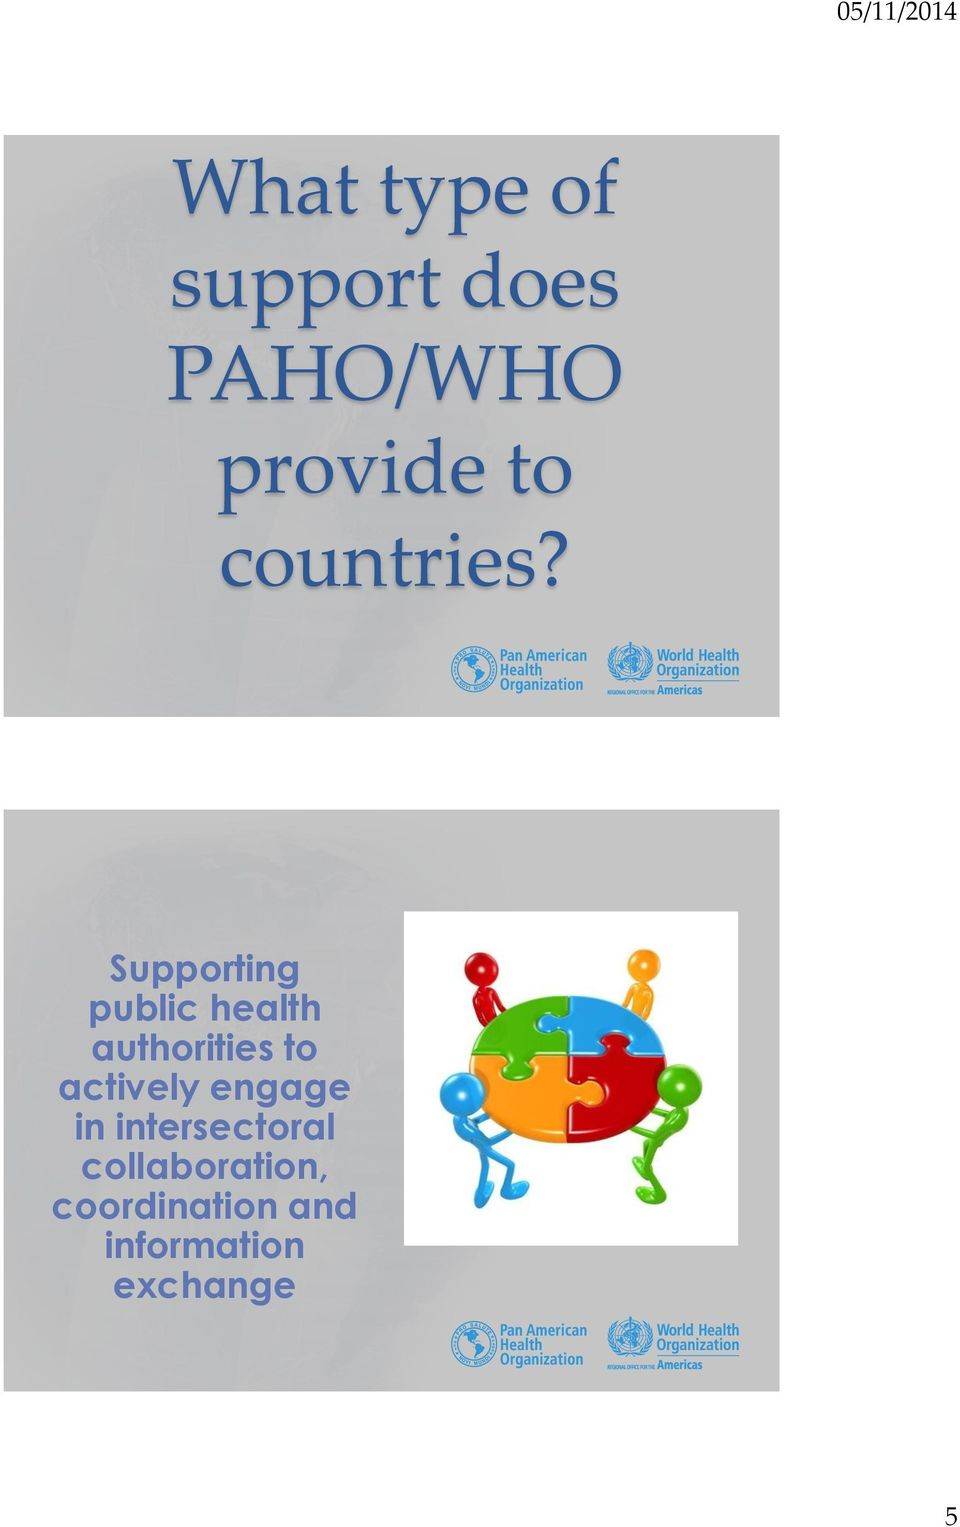 Supporting public health authorities to